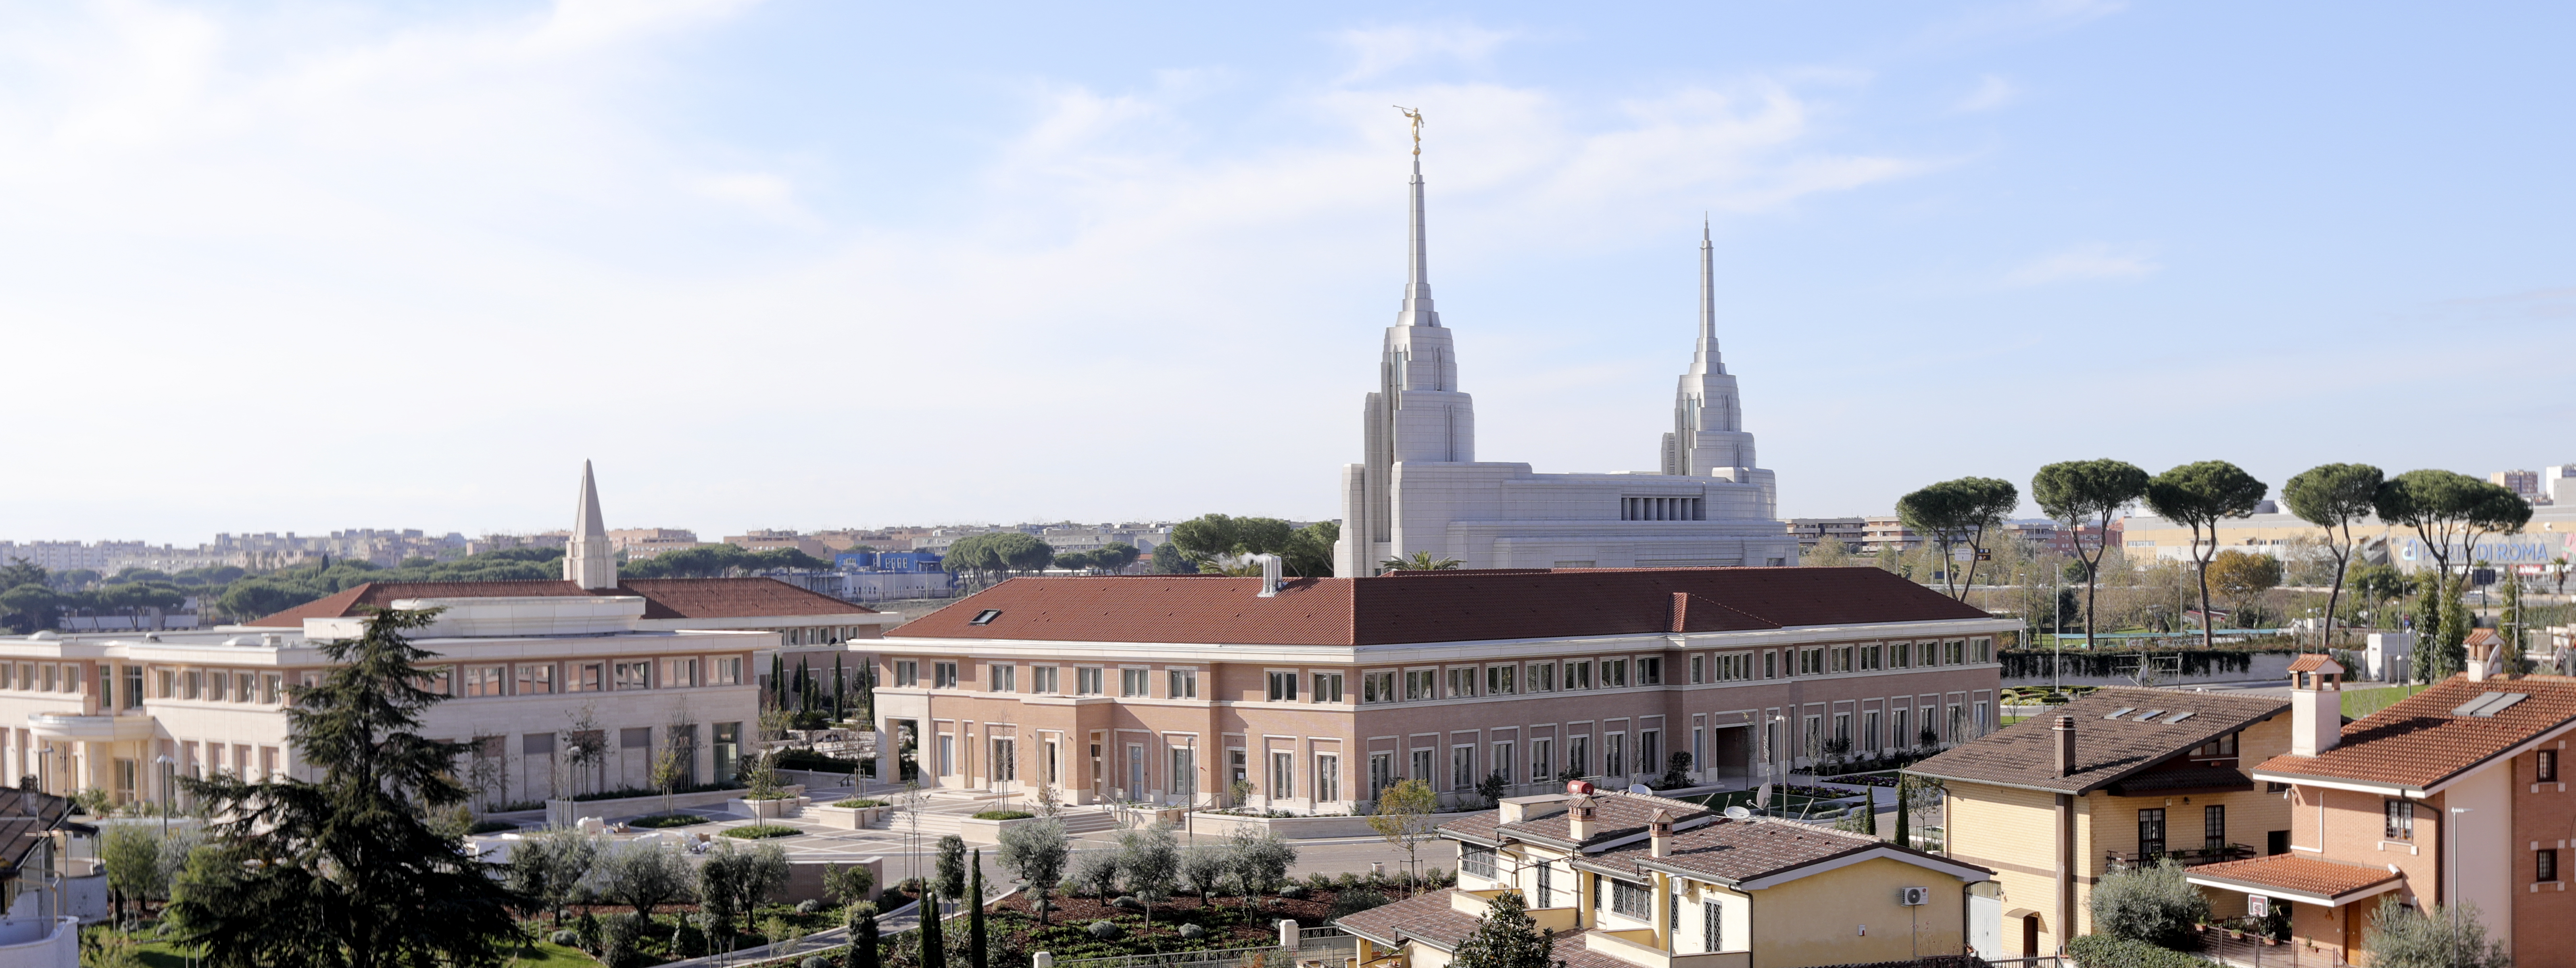 View of the Rome Temple from the Salerno's apartment in Rome, Italy, on Sunday, Nov. 18, 2018.